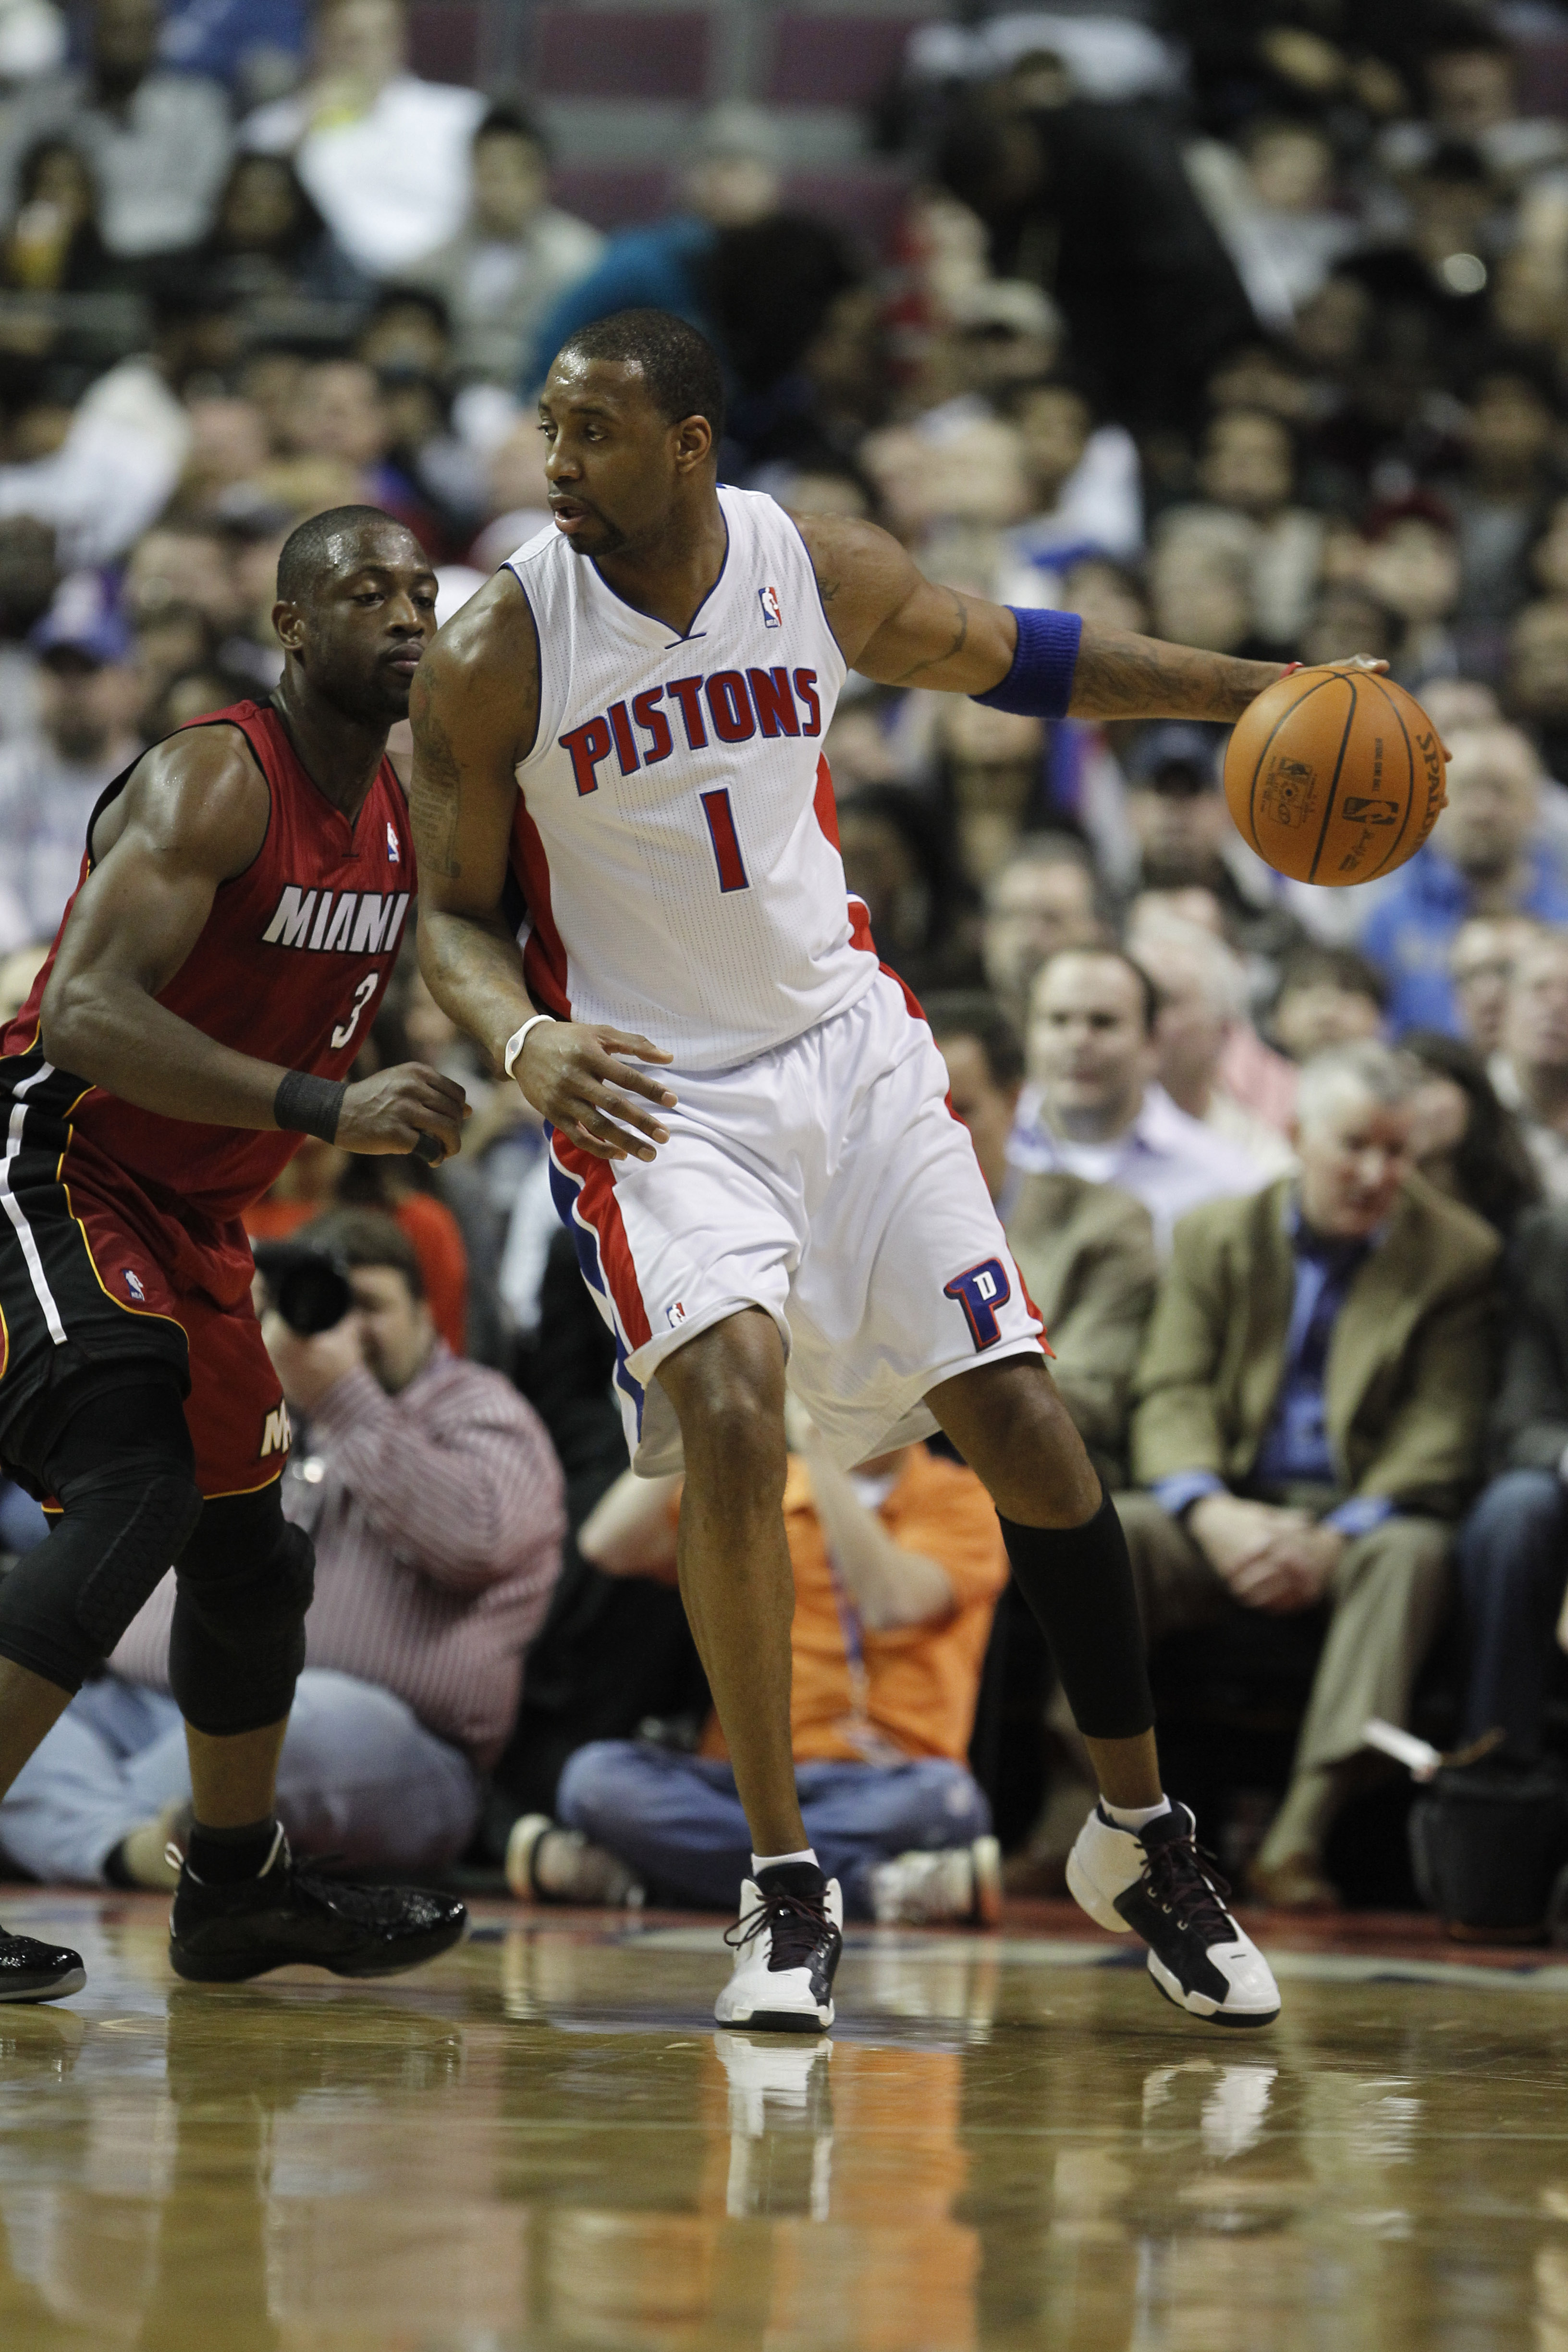 AUBURN HILLS, MI - FEBRUARY 11:  Tracy McGrady #1 of the Detroit Pistons controls the ball while playing the Miami Heat at The Palace of Auburn Hills on February 11, 2011 in Auburn Hills, Michigan.  (Photo by Gregory Shamus/Getty Images)